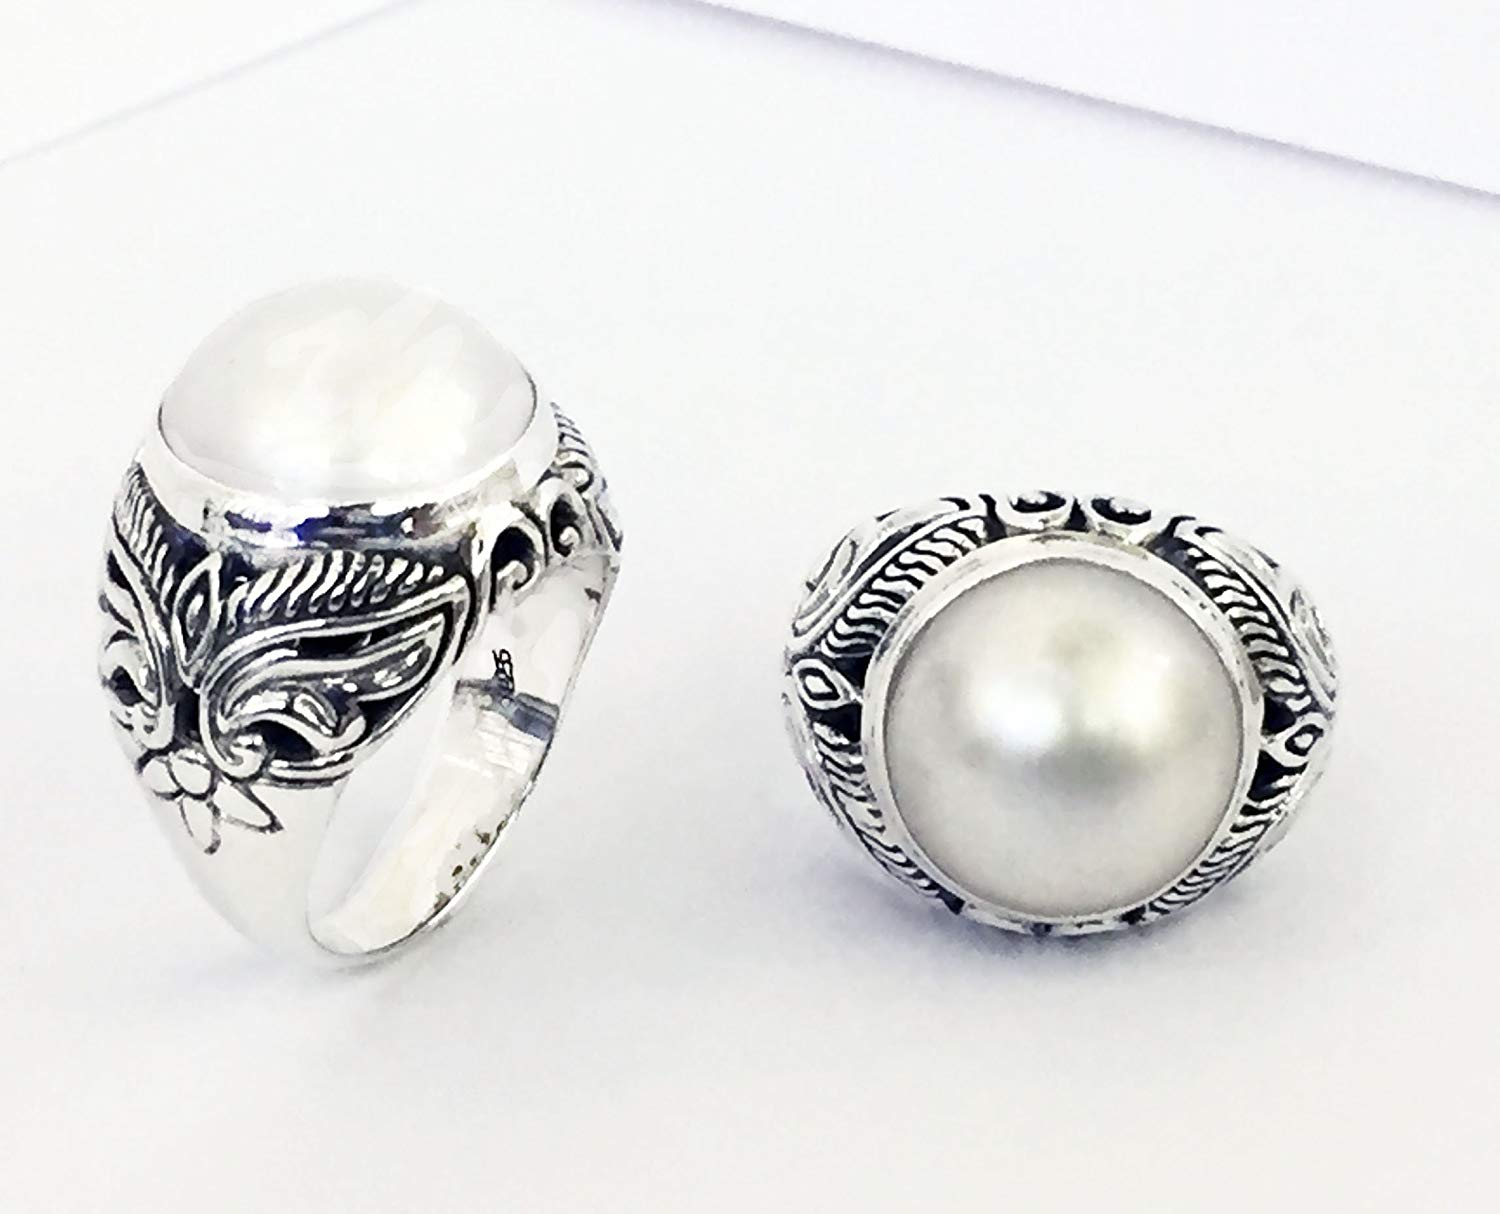 bali carving ring with cultured white mabe pearl, handmade 925 sterling silver ring with pearl, pearl ring, mabe pearl ring, silver ring with white mabe pearl,